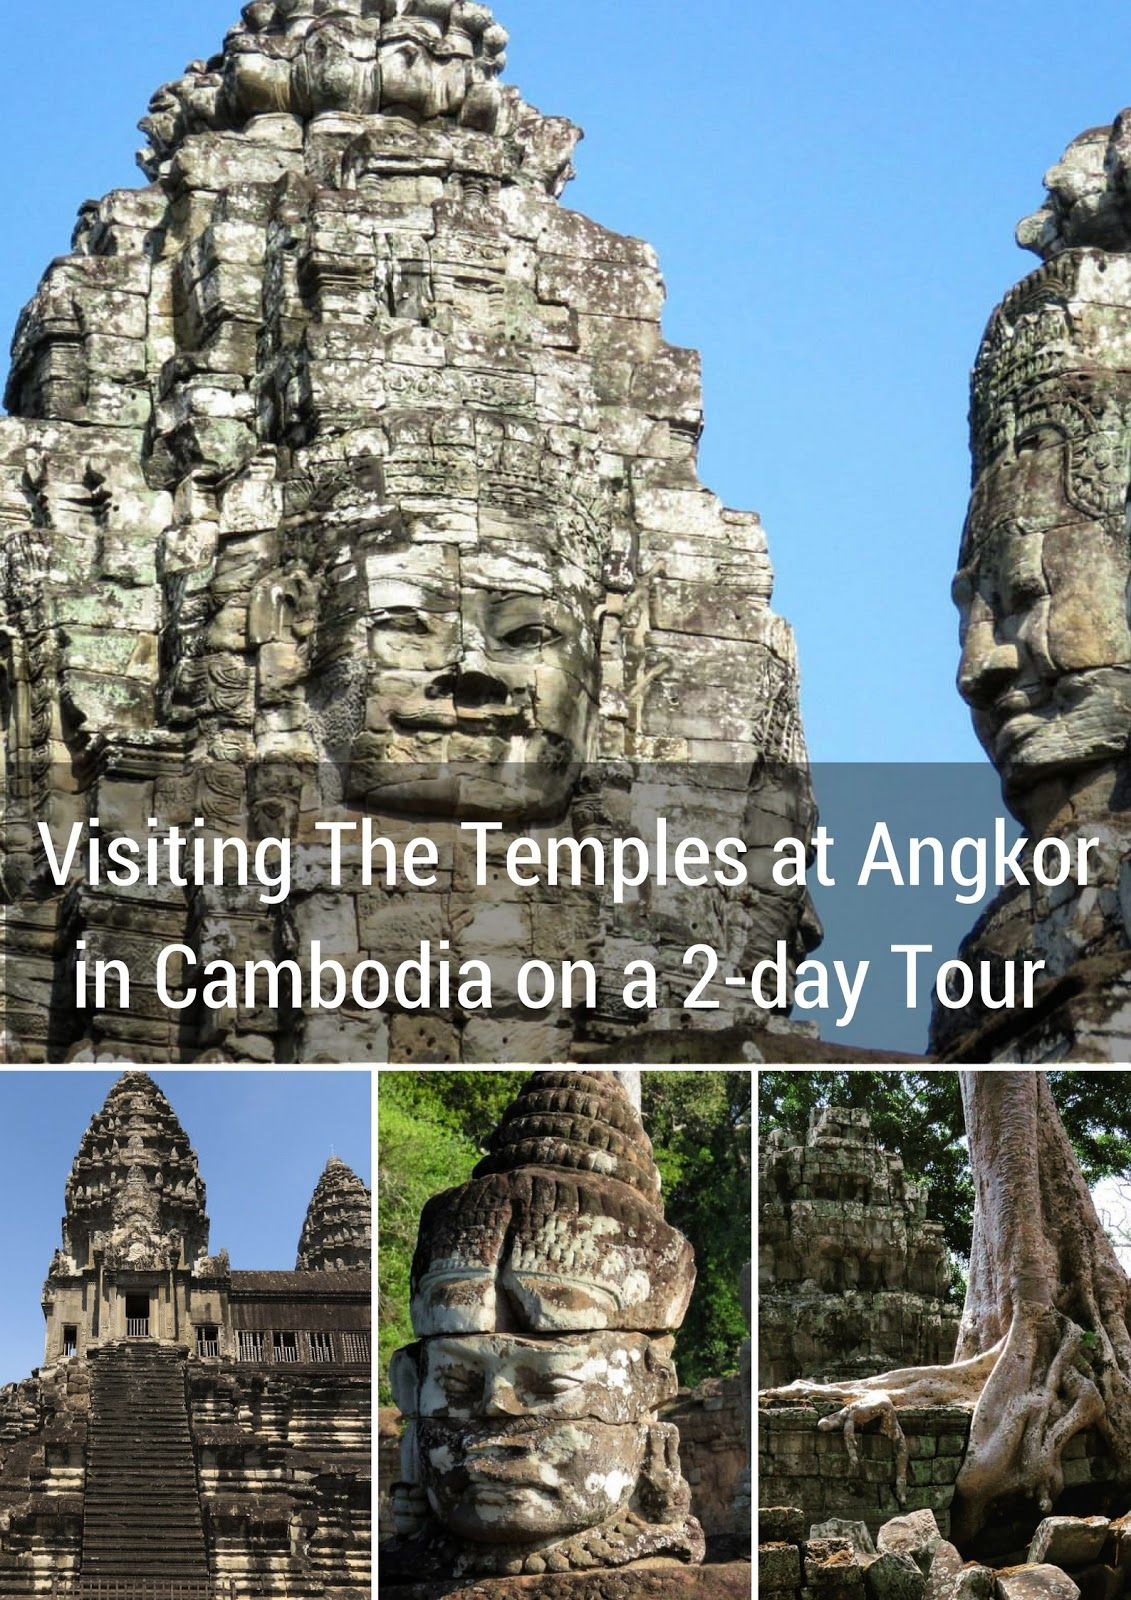 Visiting The Temples at Angkor in Cambodia on a 2-day Tour with a Private Air-Conditioned Car and Guide | Sidewalk Safari